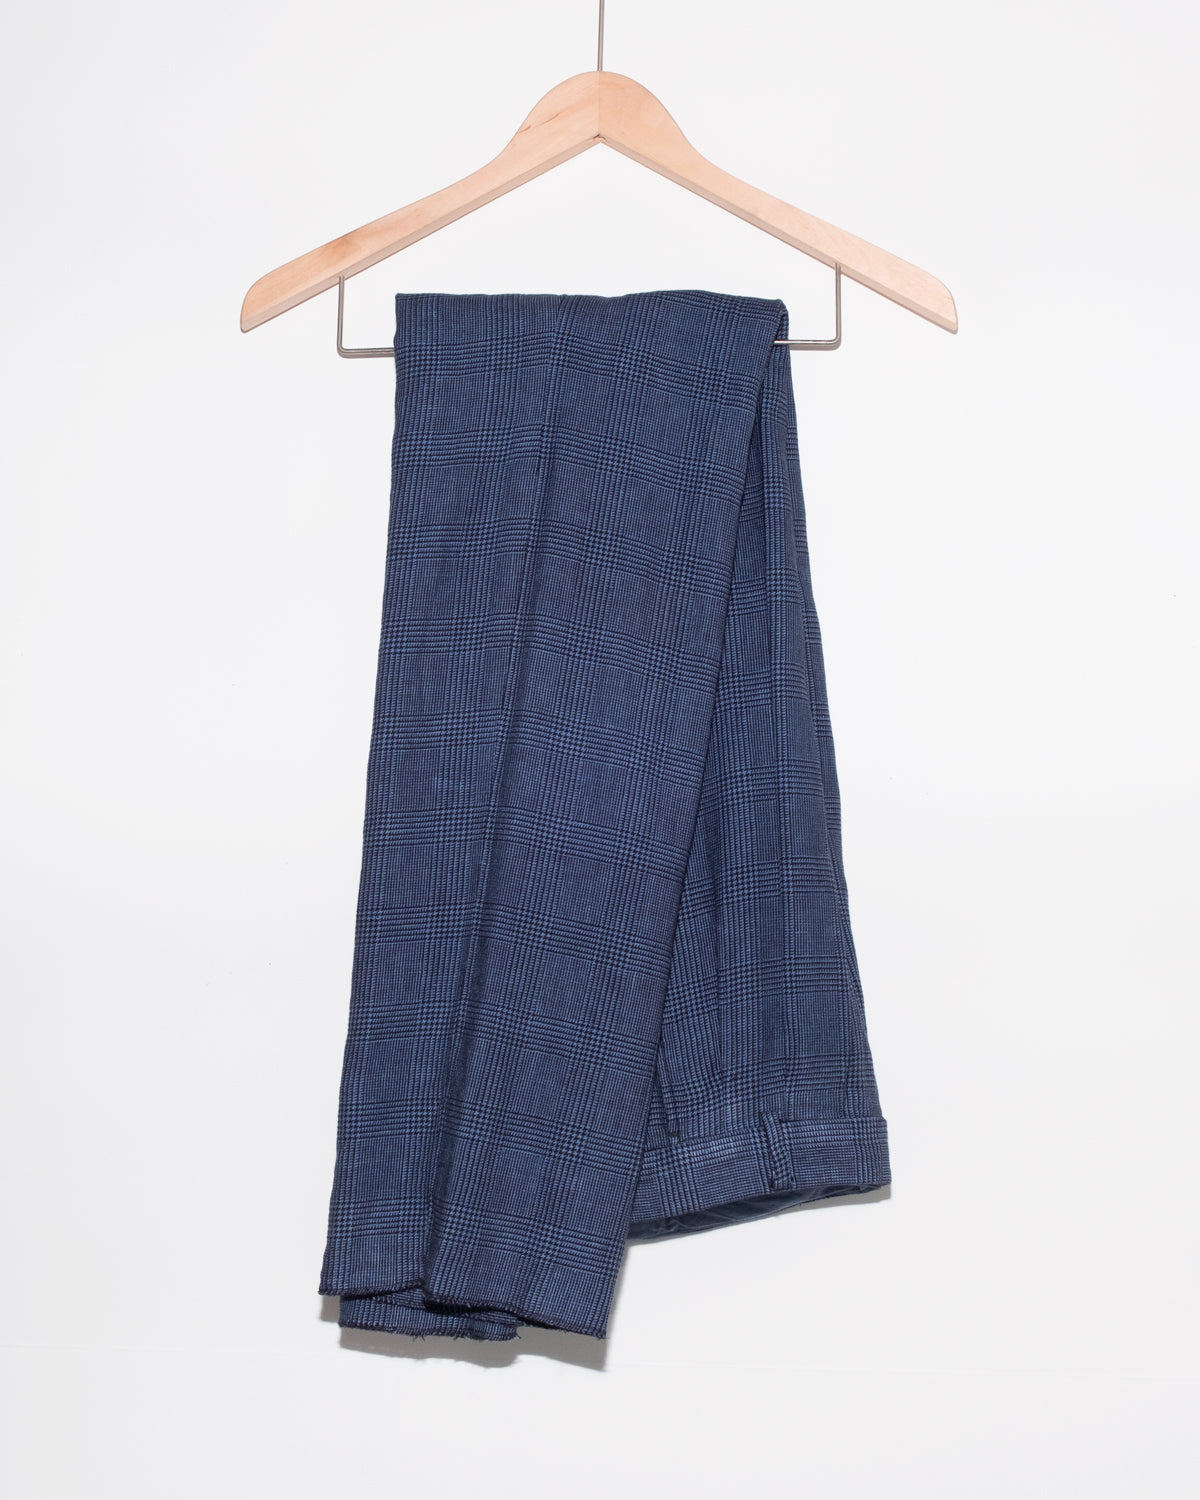 The Academy New York double pleat trouser in overdyed lilac. (folded over hanger)